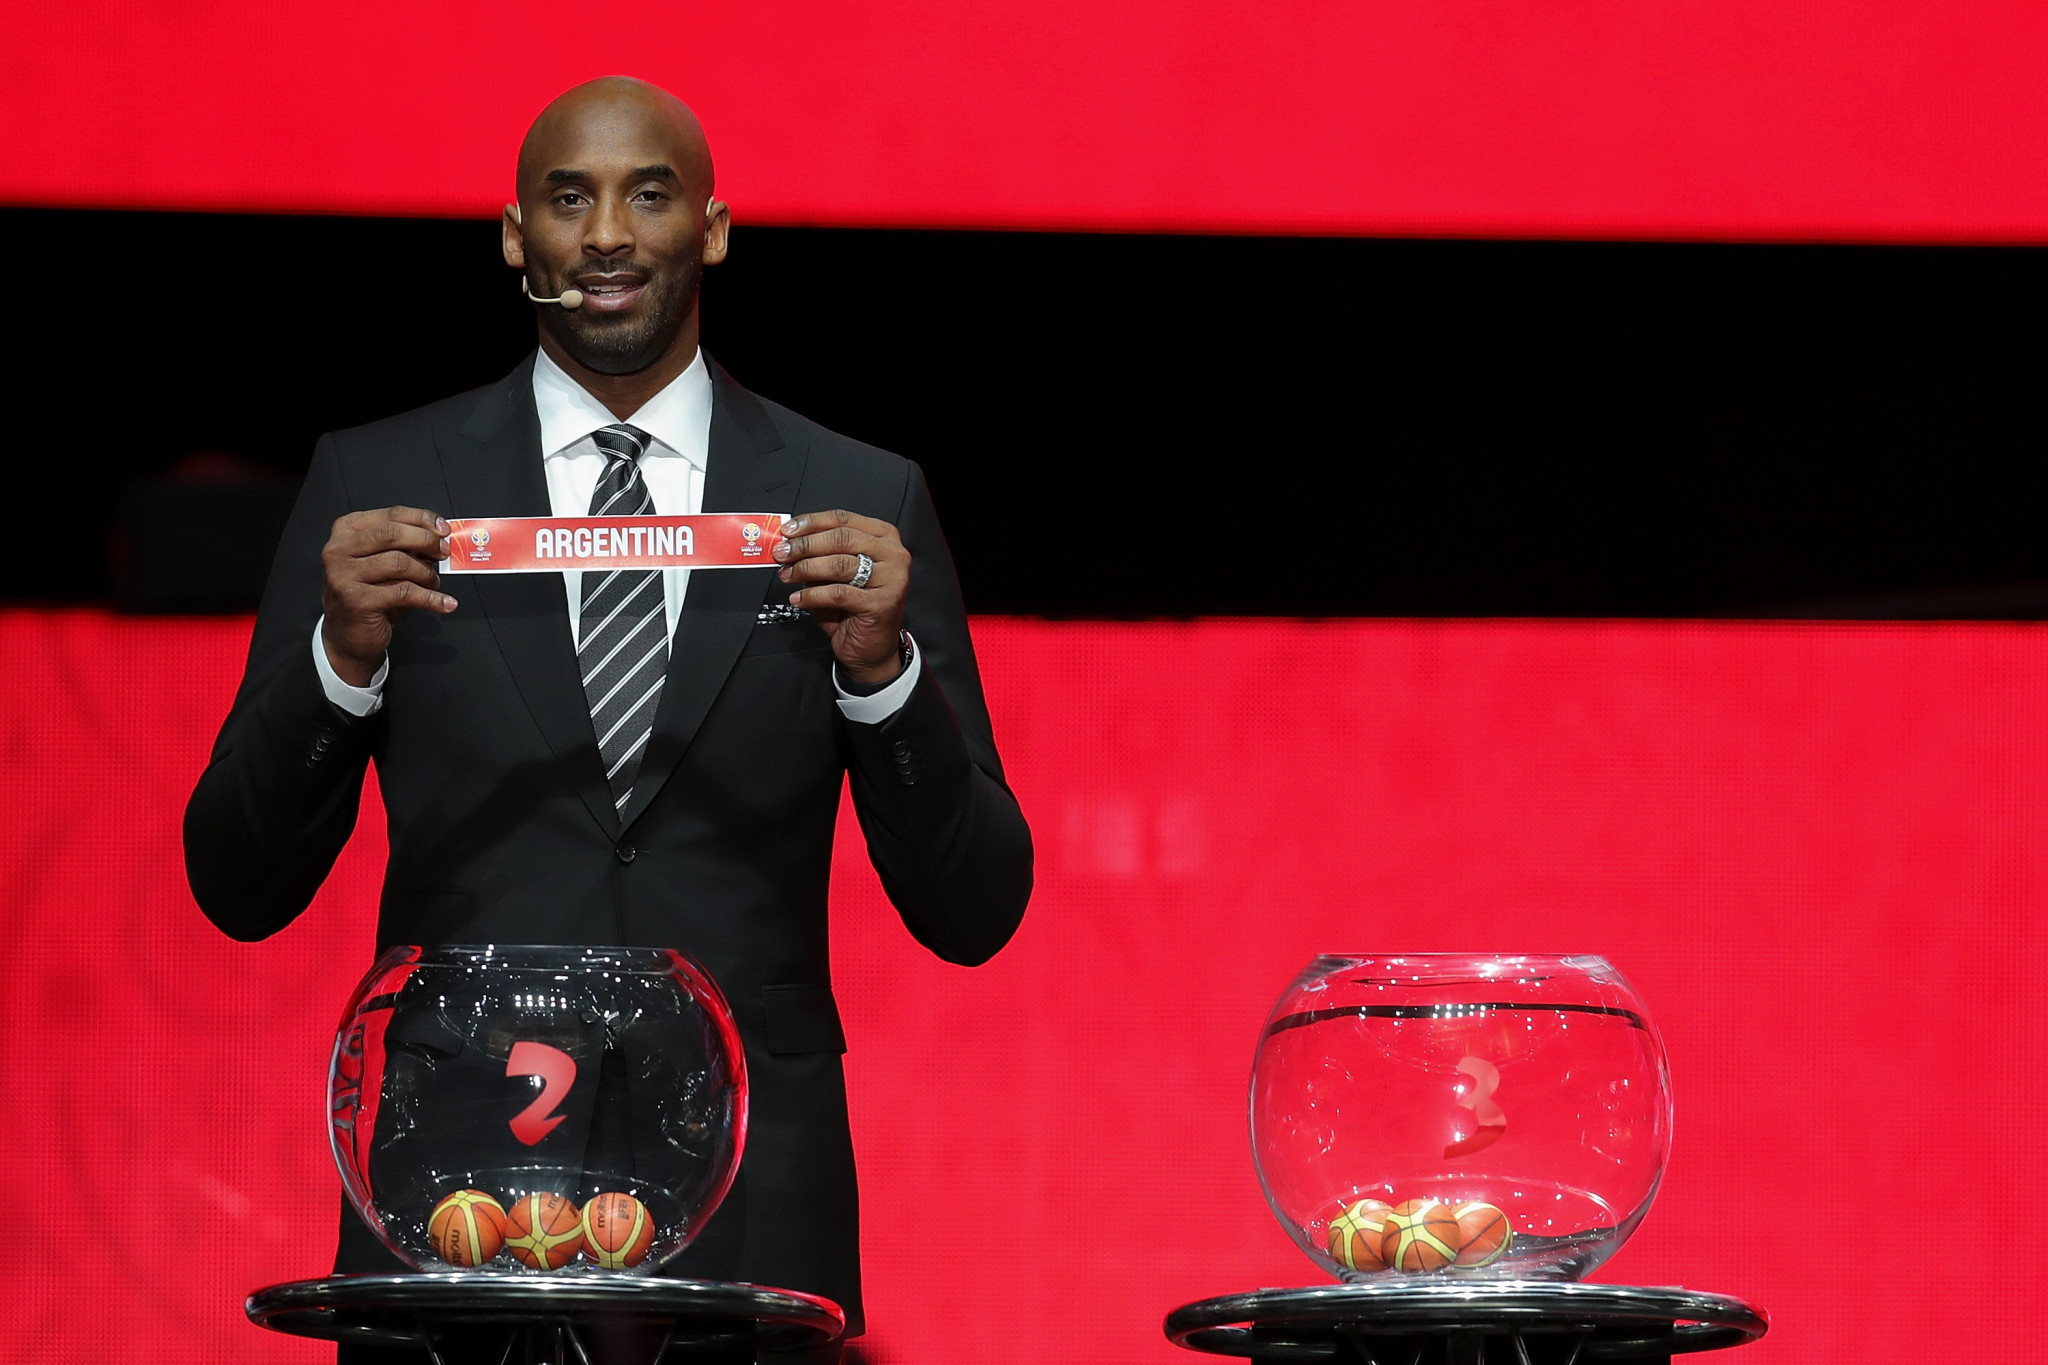 America's Kobe Bryant was at the FIBA Basketball World Cup 2019 draw in Shenzhen ©Getty Images